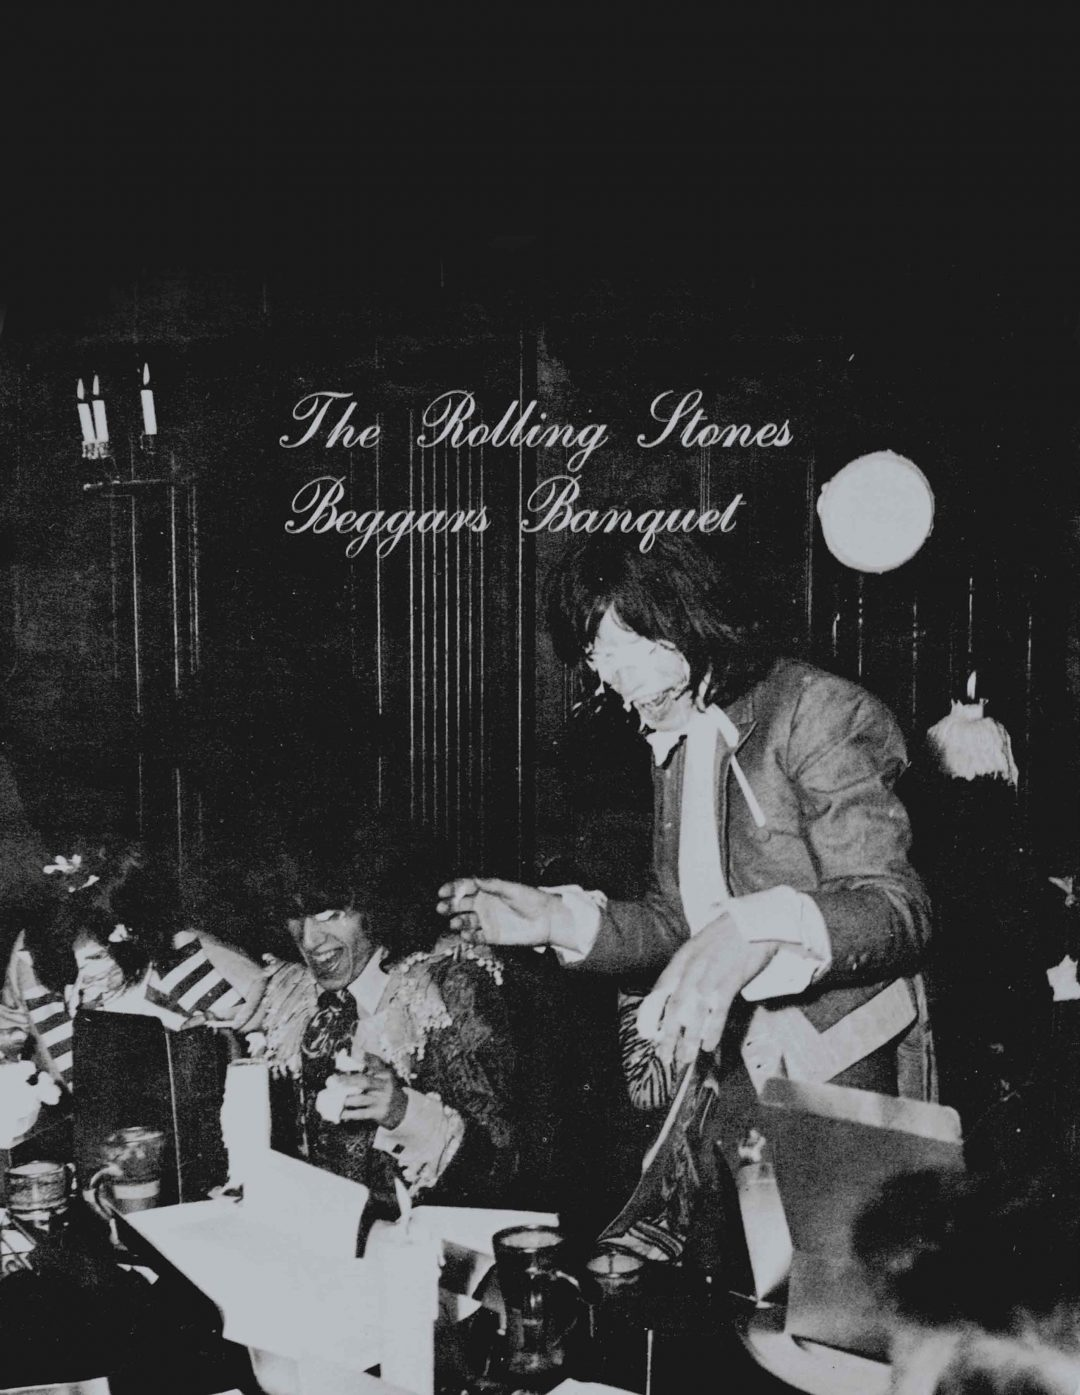 Beggars Banquet Press Reception supporting image